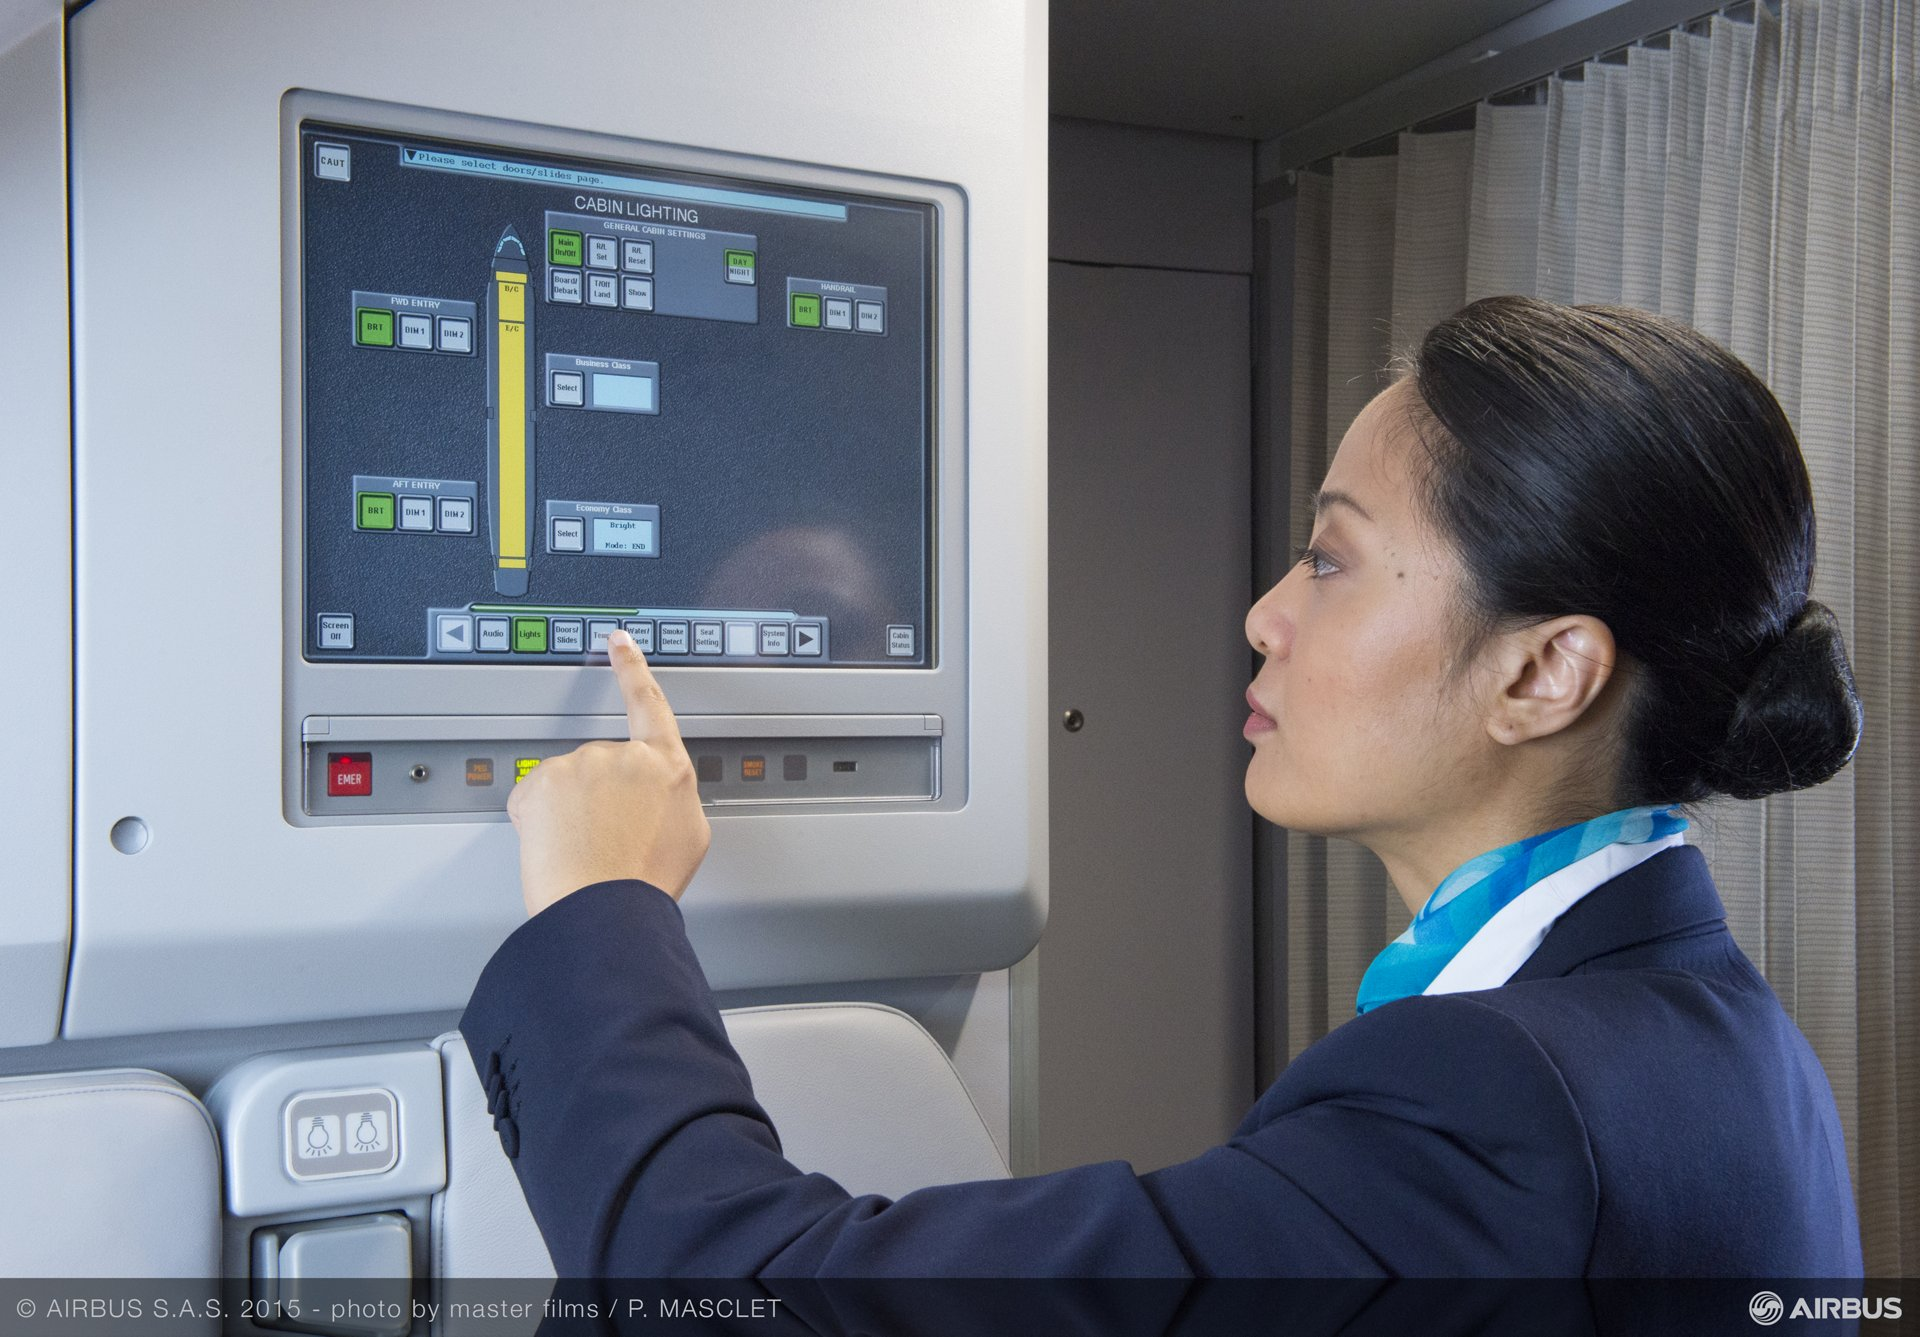 To ensure a successful entry-into-service and safe operations of all Airbus aircraft, Airbus provides a full range of cabin crew training courses. Enhanced knowledge of Airbus aircraft and cabin systems leads to cabin crews' optimum service on-board and passengers' full satisfaction.